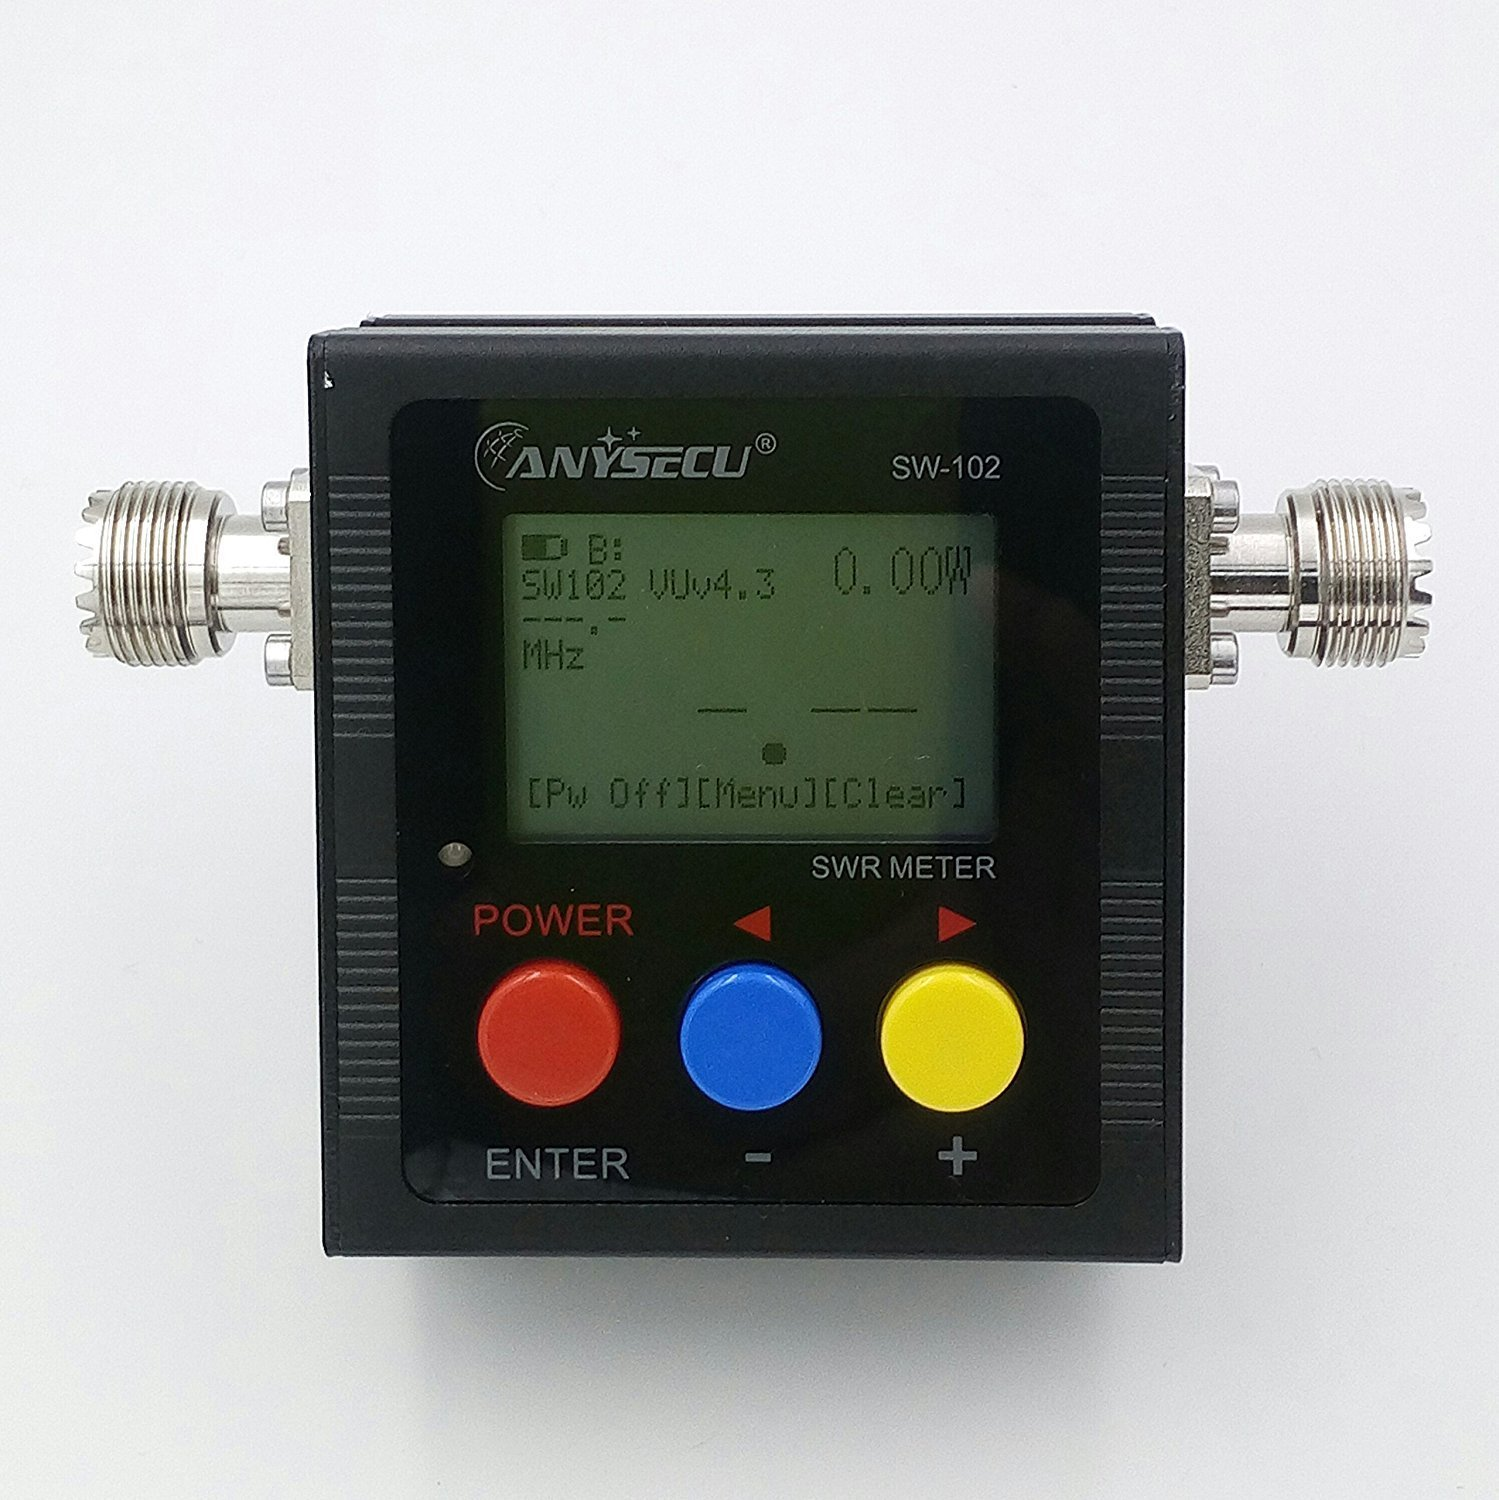 Anysecu SW-102 125-525Mhz Digital VHF/UHF Antenna Power & SWR Meter With  SO239 Connector For Mobile Radio - Rapid Survival